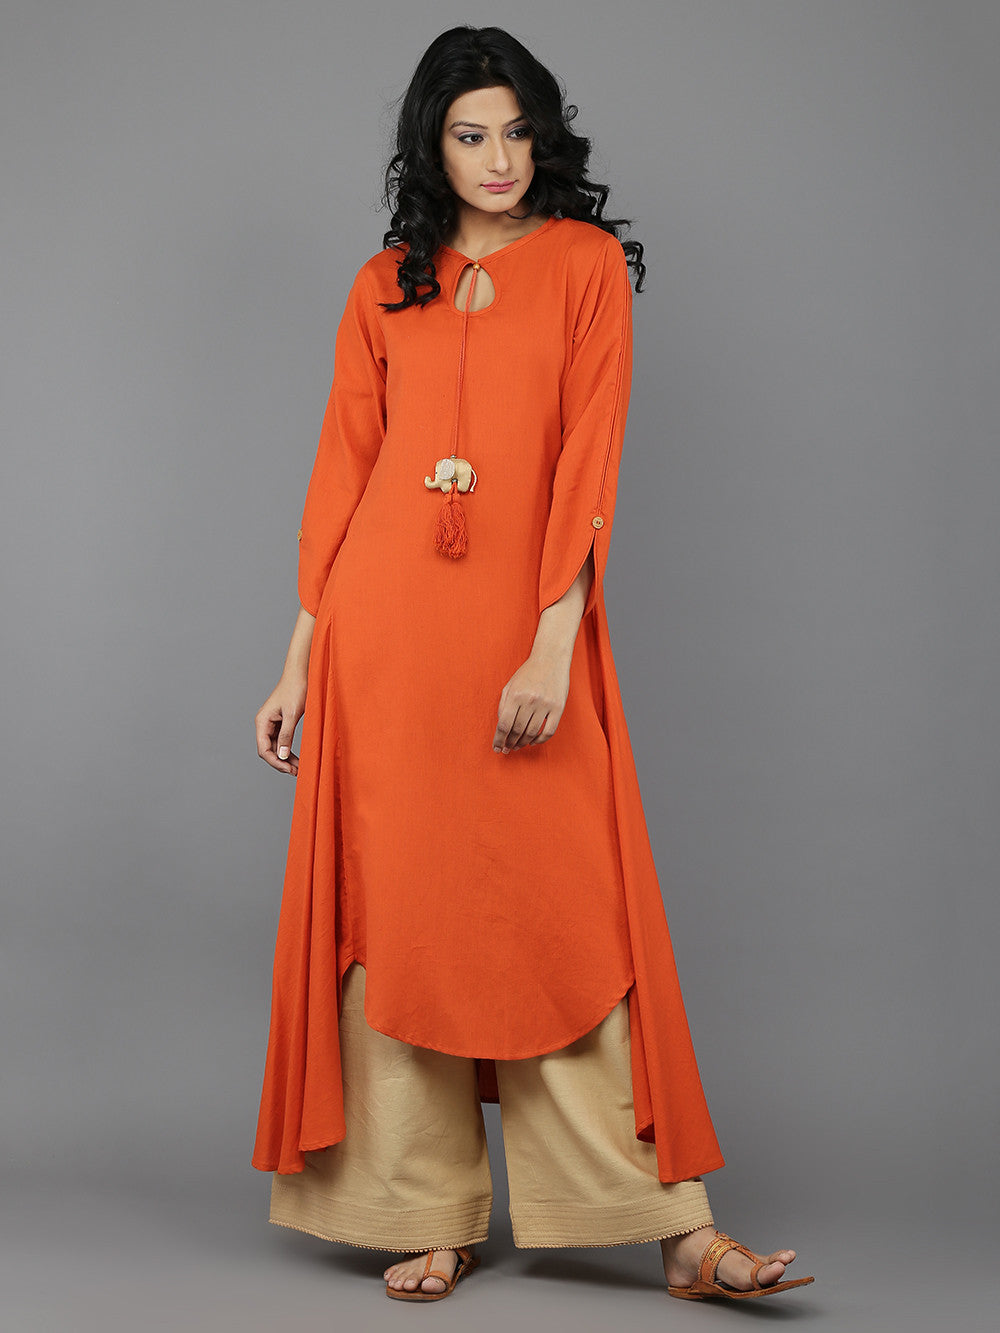 Pastel orange khadi kurta and beige palazzo set from The Loom